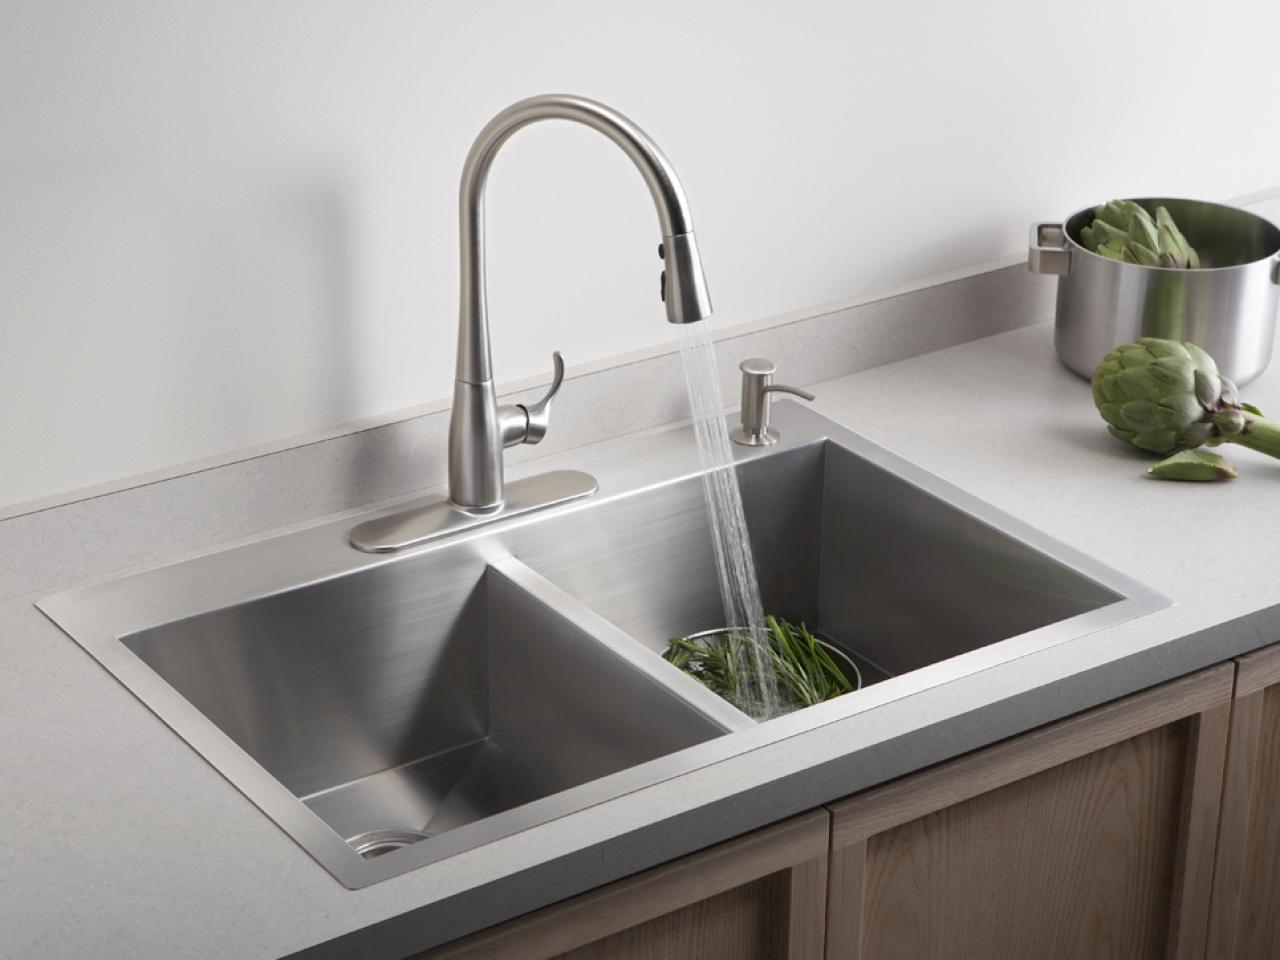 9 kitchen features that will increase your homes appeal kitchen sink styles Self Rimming Sink